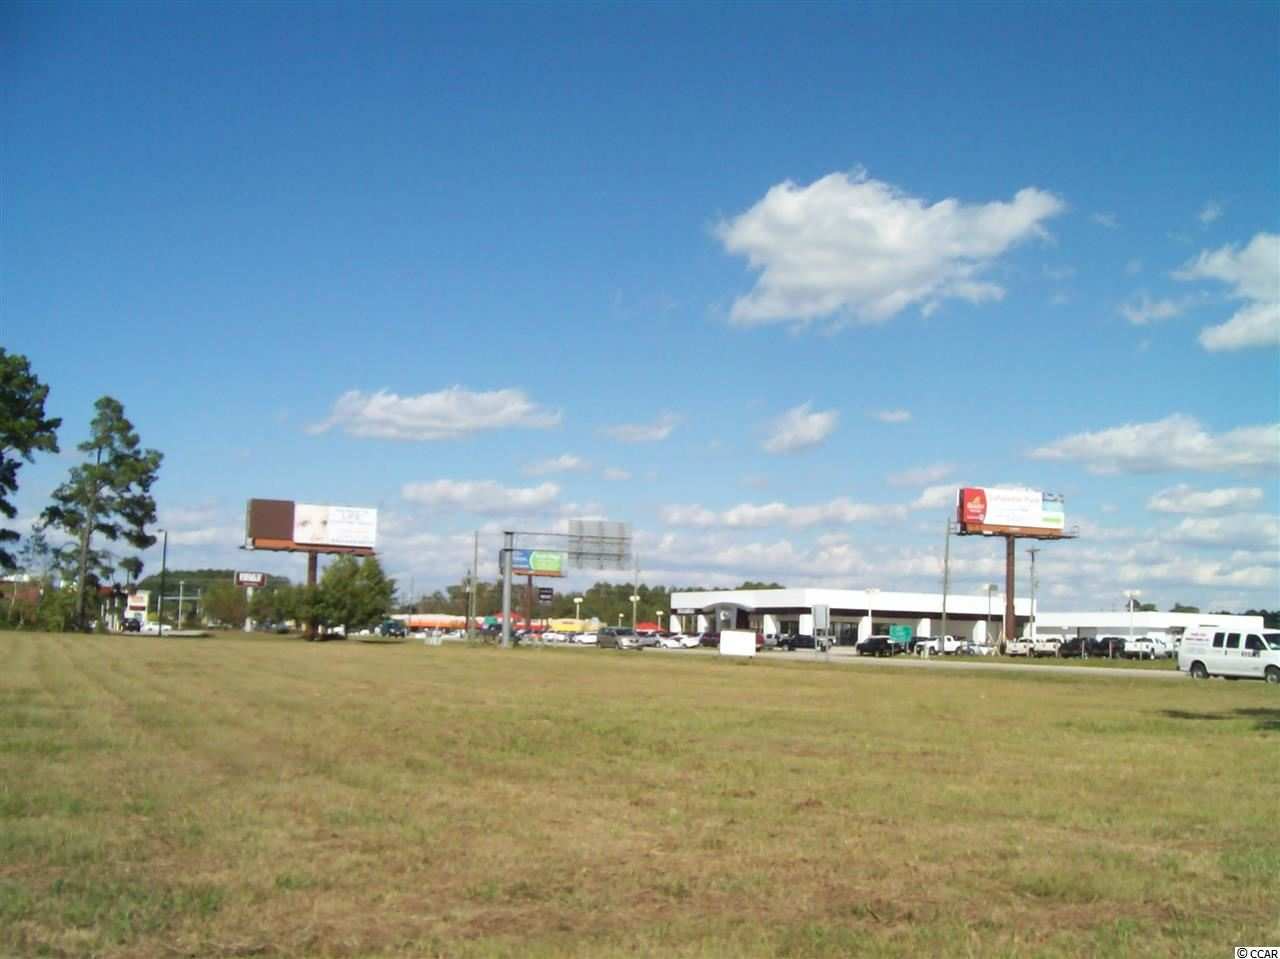 With over 300 feet of direct highway frontage with two curb cuts on Hwy 9 just East of BB&T and CVS – this 1.8 acre site is cleared and ready for immediate use. Site may be subdivided with approved user but owner would prefer single tenant. Great area for fast food or retail. Join Goodwill, Bojangles, Conway National Bank, Bell & Bell GMC/Buick, CVS, and BB&T at this great commercial location. Acreage is approximate and not guaranteed. Lessee is responsible for verification.